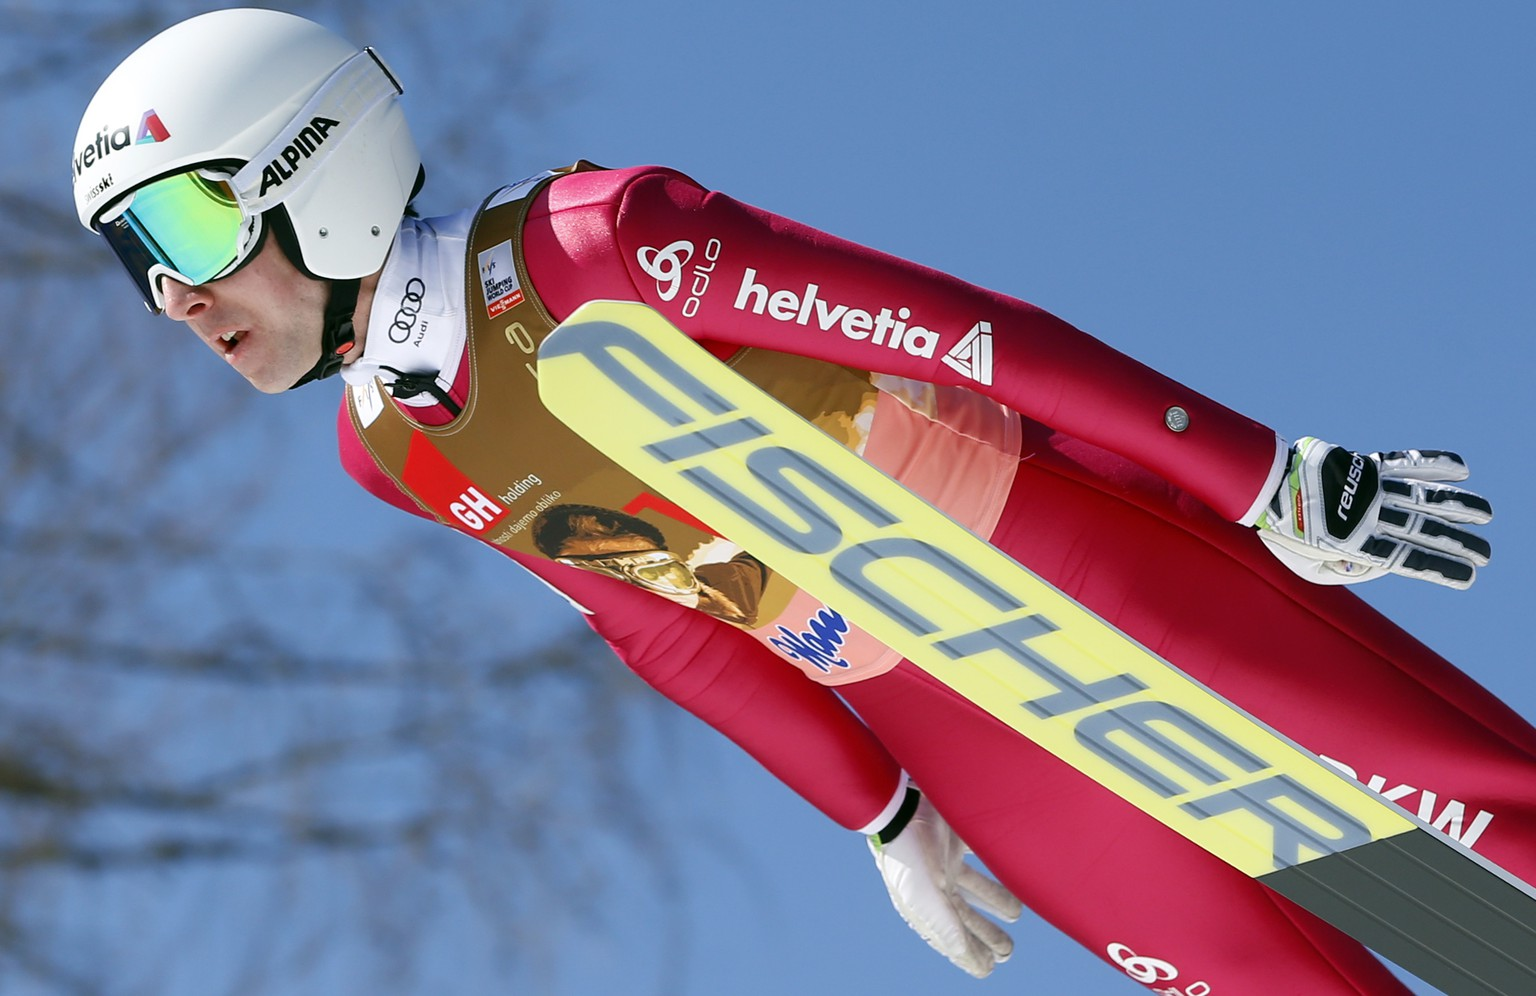 Simon Ammann of Switzerland competes to place eighth at the Ski Jumping World Cup individual event in Planica, Slovenia, Sunday, March 20, 2016. (AP Photo/Darko Bandic)